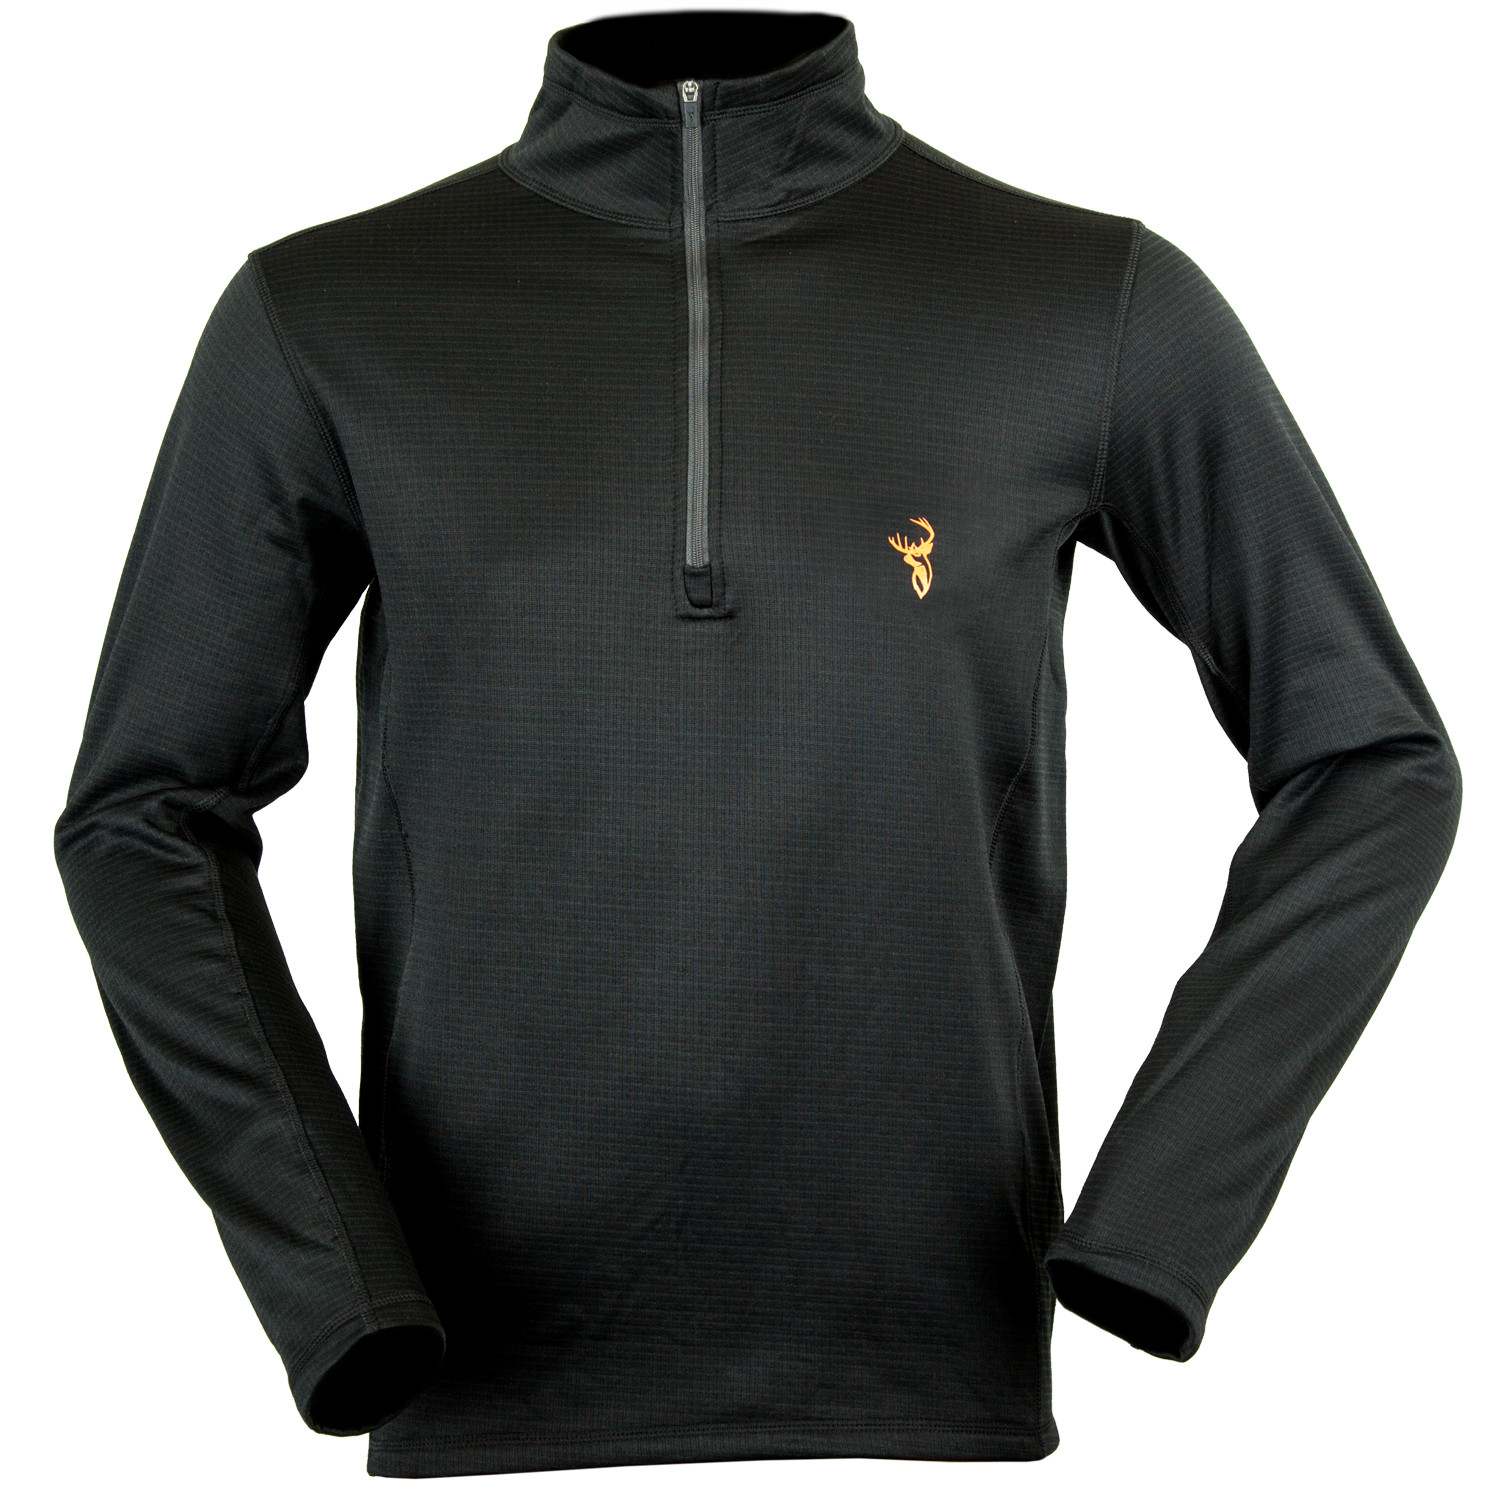 Hunters Element Titanium LS Zip Top - Black